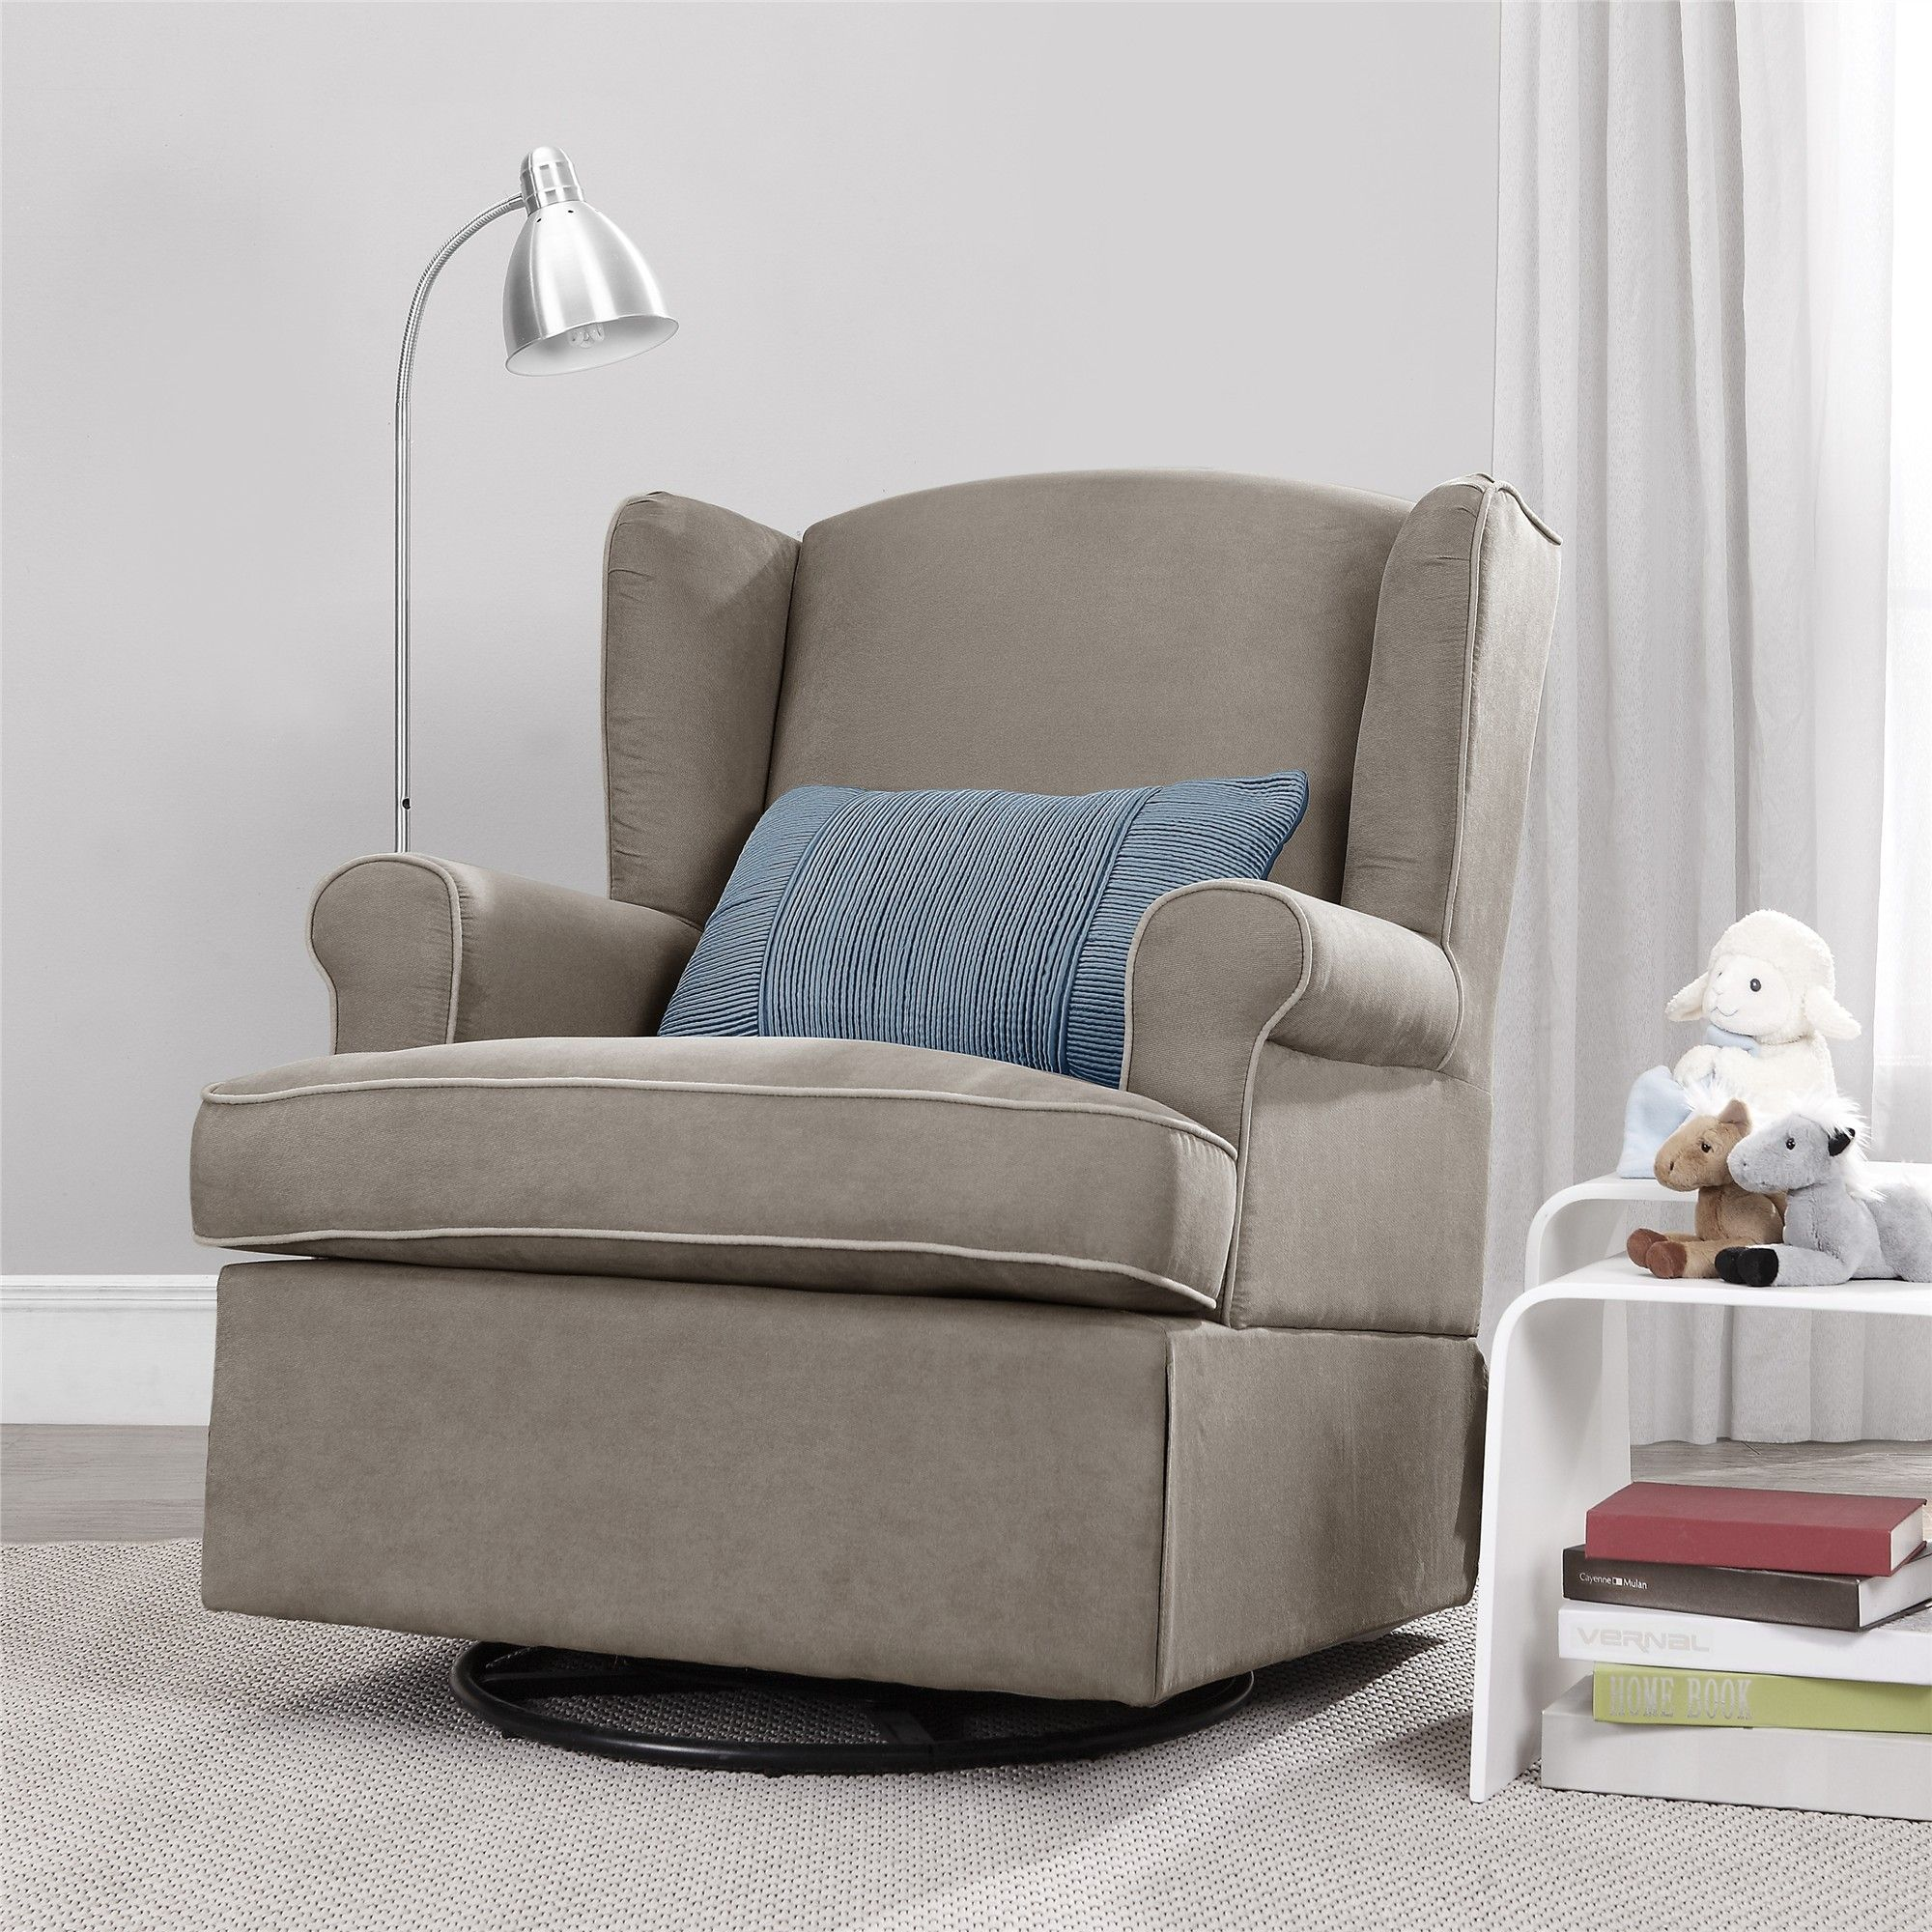 Little castle transition white leather swivel glider - The Baby Relax Colby Swivel Glider Offers An Inviting Place To Relax And Attend To Baby